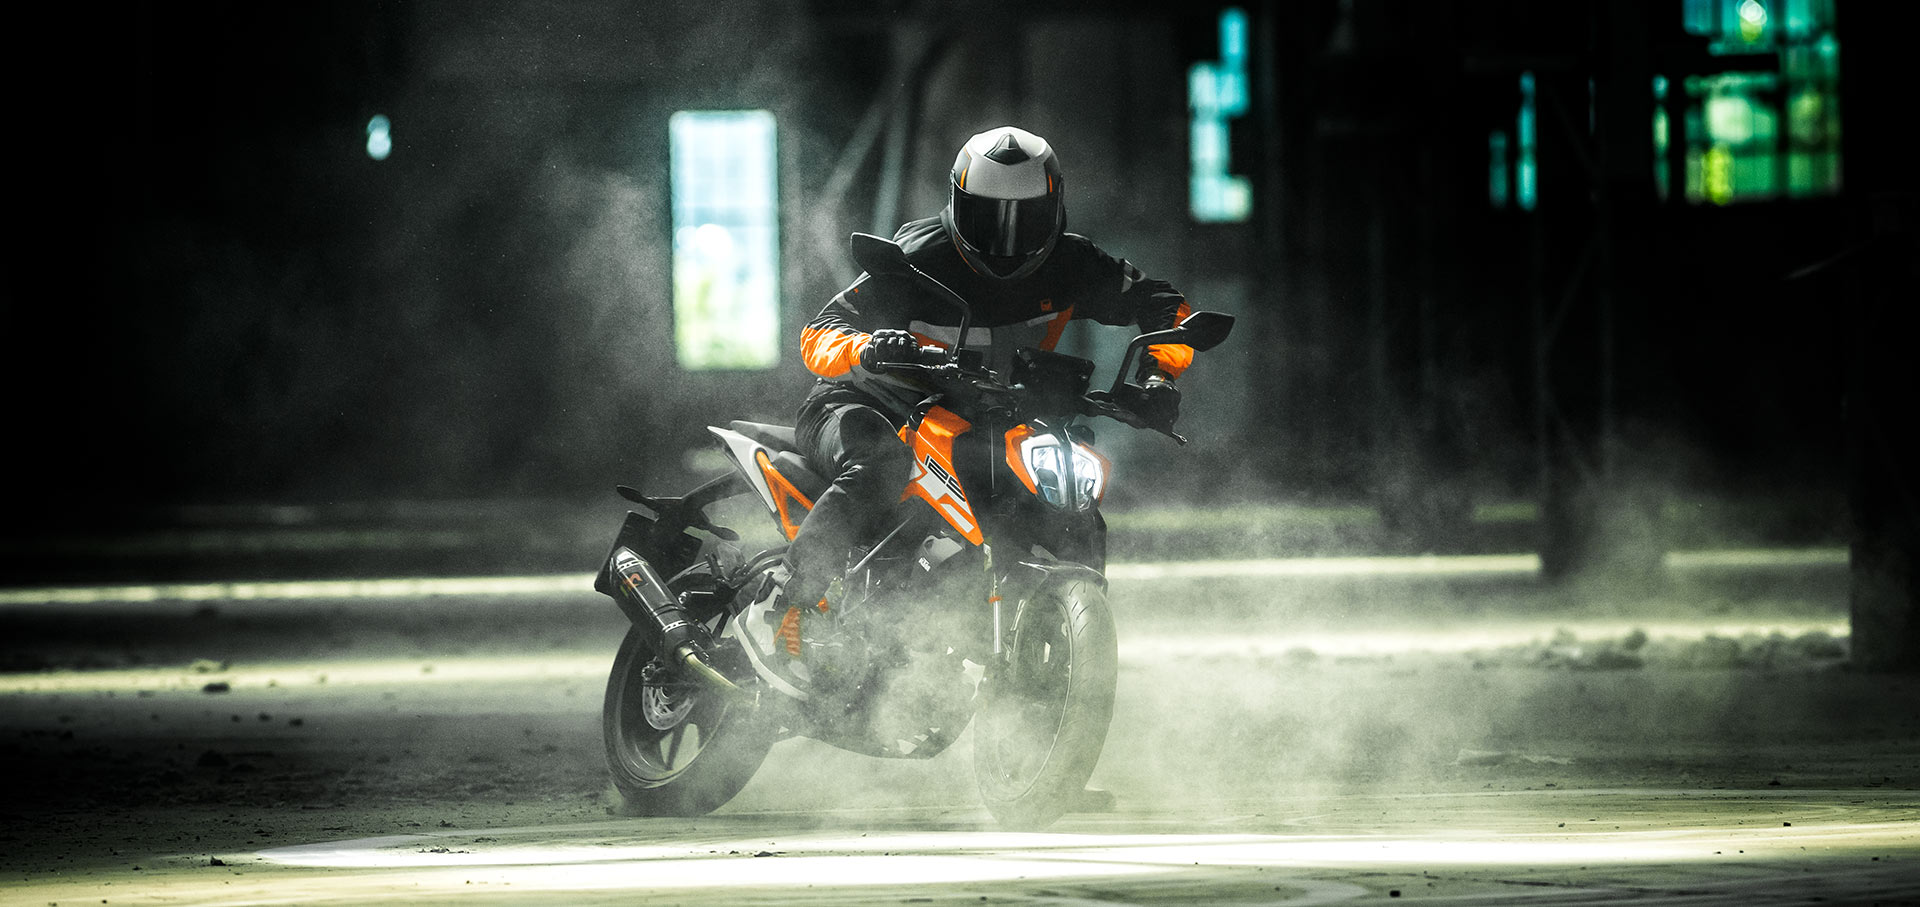 KTM Duke 125 latest model